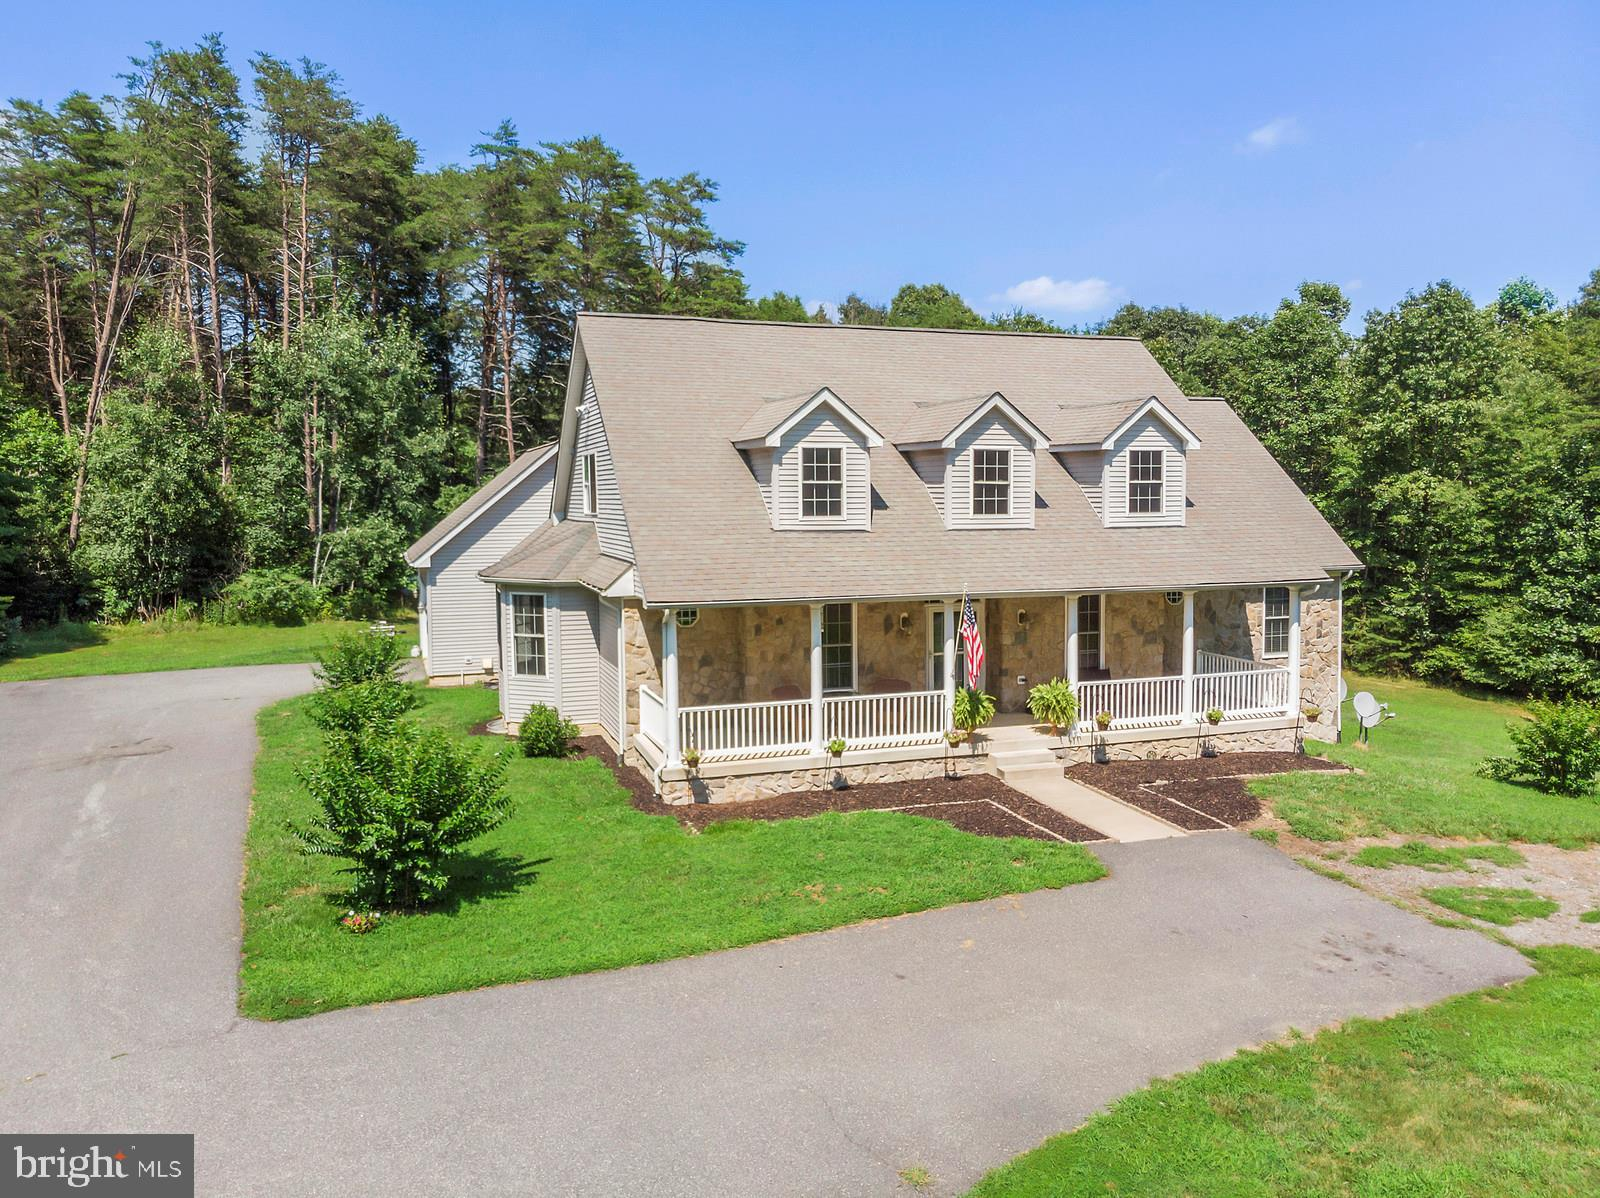 2578 DREAM CATCHER LANE, GOLDVEIN, VA 22720